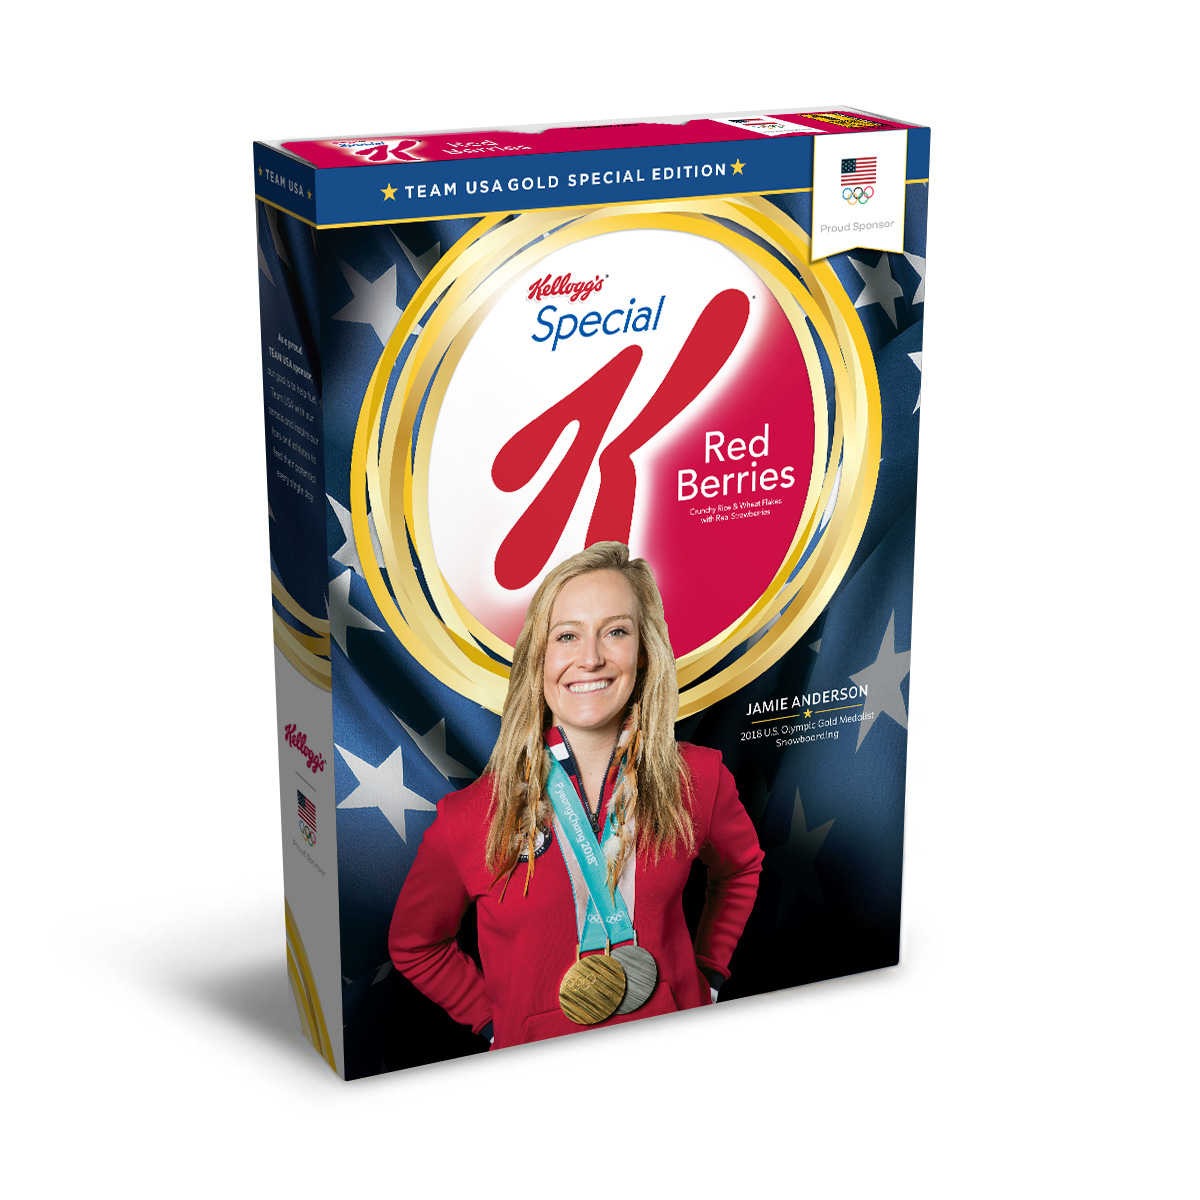 Jamie Anderson's Gold Medal Edition Kellogg's® Special K® Red Berries Box